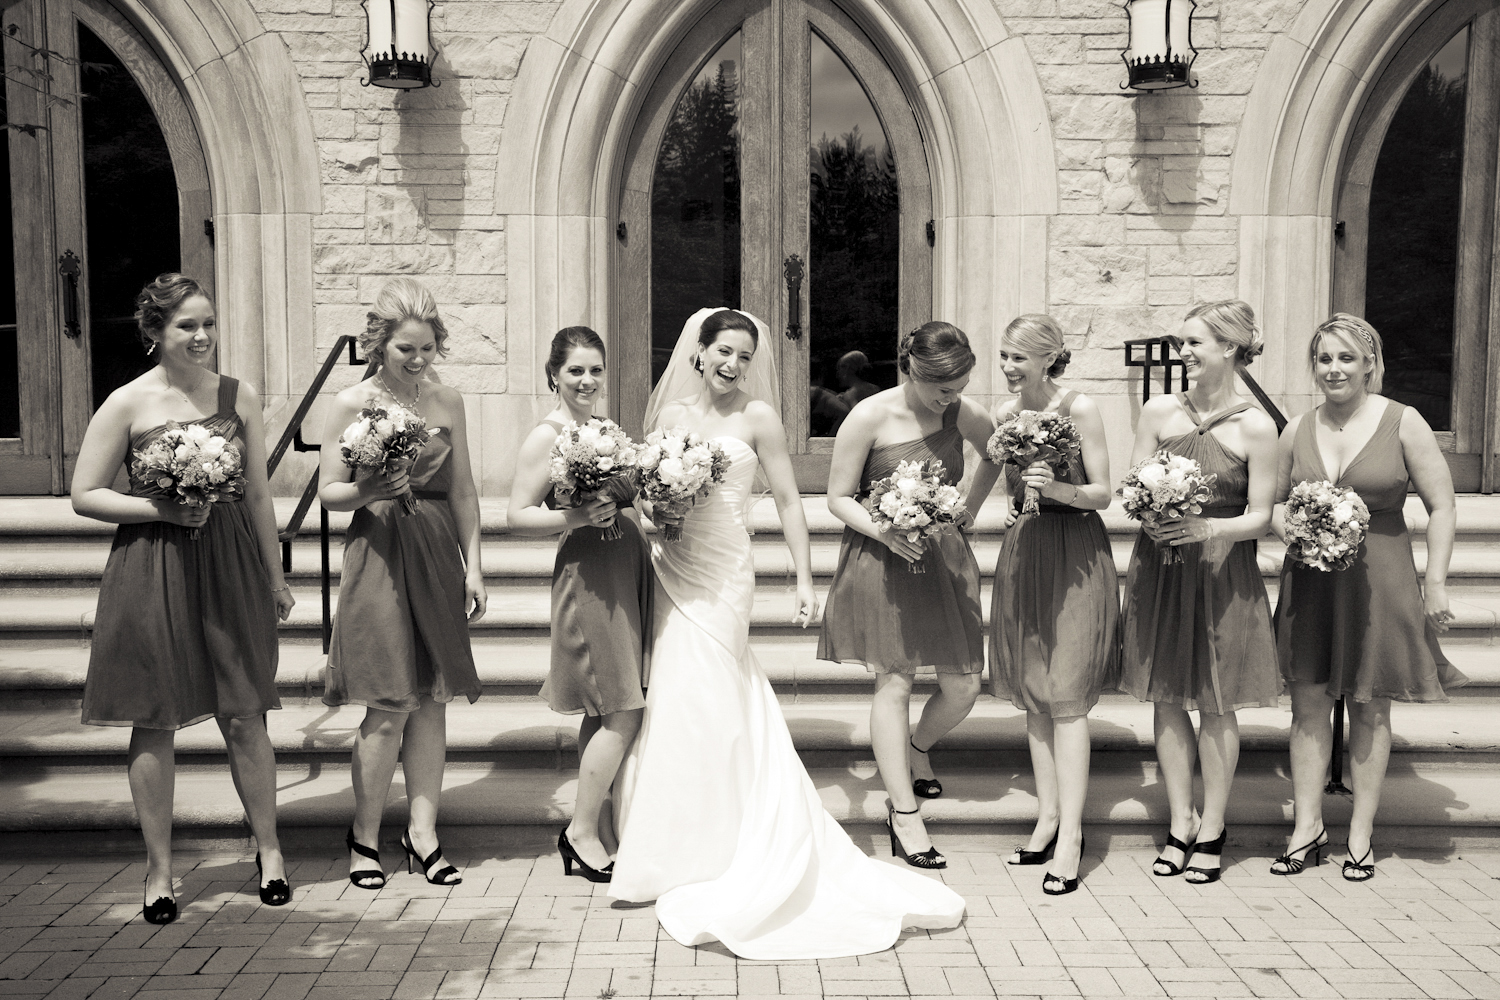 Indianapolis-Indiana-Wedding-Photographer-Crowes-Eye-Photography-Saint-Pauls-Bridal-party.jpg